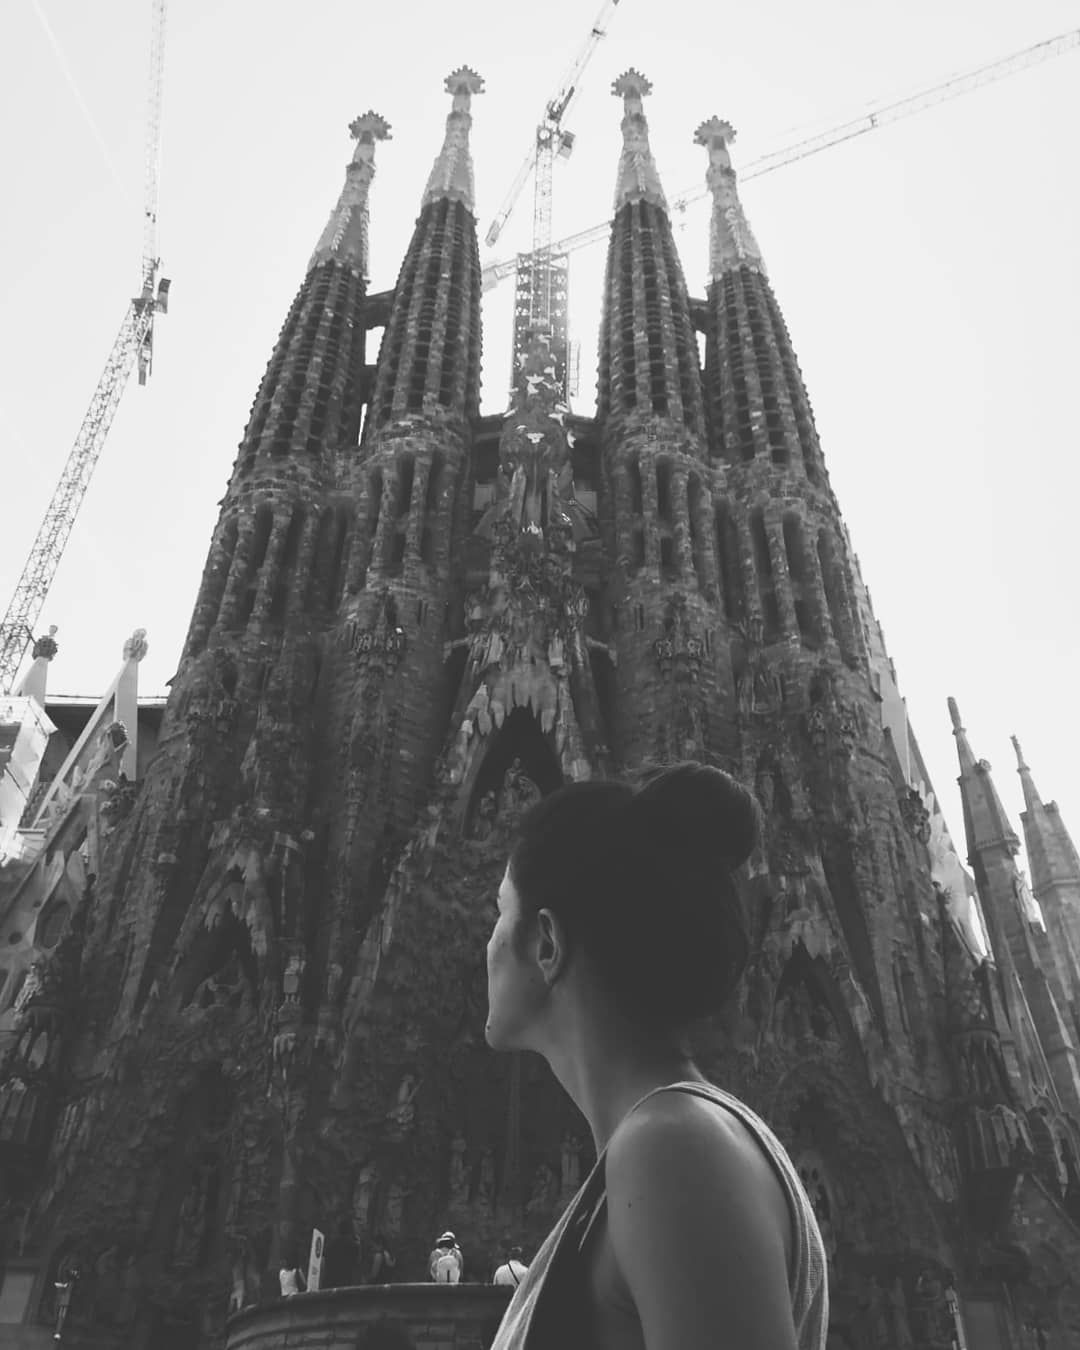 And you and I We're flying on an aeroplane tonight We're going somewhere Where the sun is shining bright Just close your eyes And let's pretend we're dancing in the street In Barcelona... . .  Ed Sheeran-Barcelona . . . #instagram #fotografia #foto #picture #picoftheday #instapic #igers #igersspain #igersbarcelona #barcelona #bcn #sagradafamilia #blackandwhite #blancoynegro #lovelyplace #instamoments #vivalavida  #viajedelos30